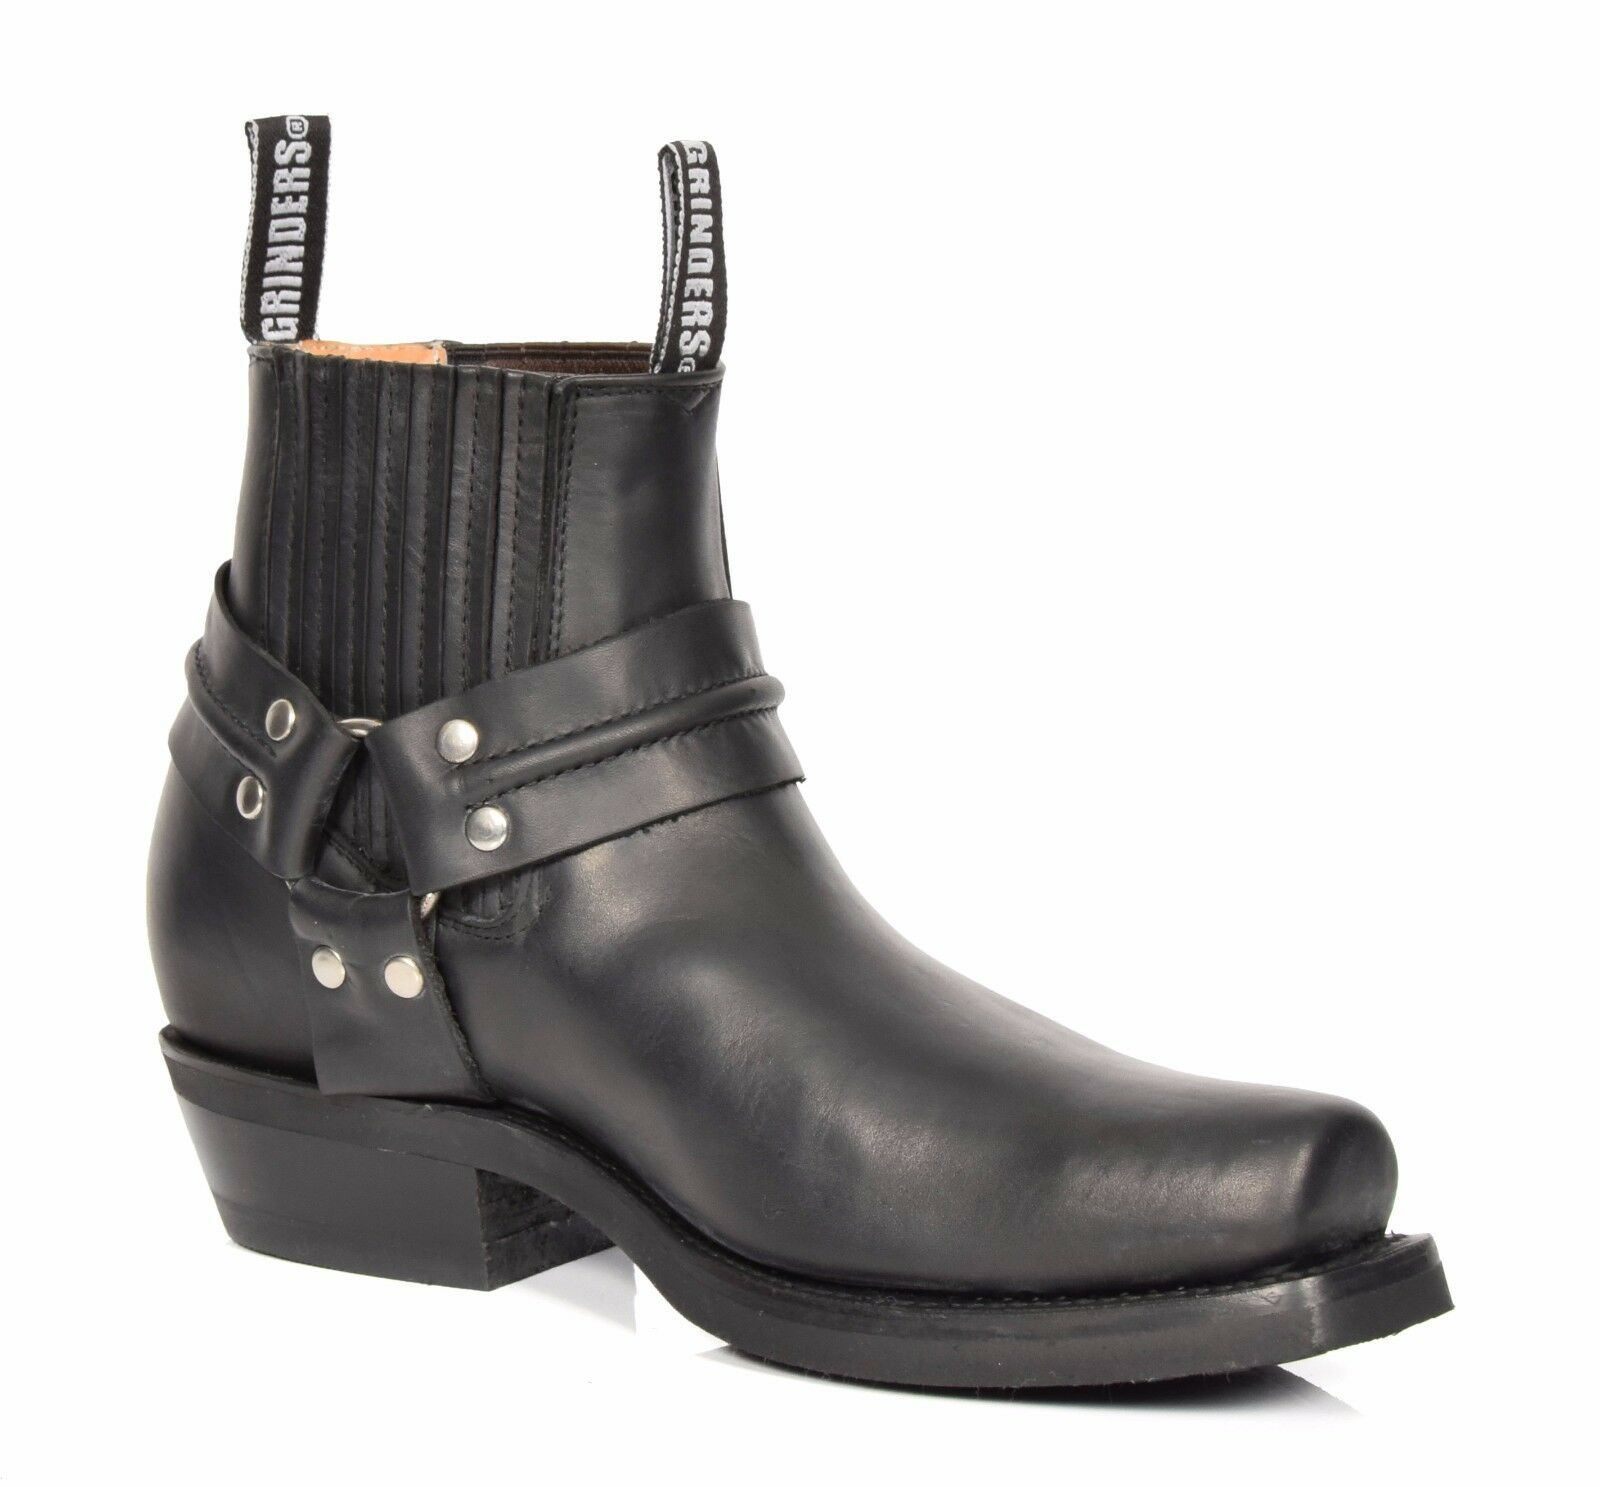 b69e4d54376 Real Leather Chelsea Boots Cowboy Biker Style Slip On Square Toe ...